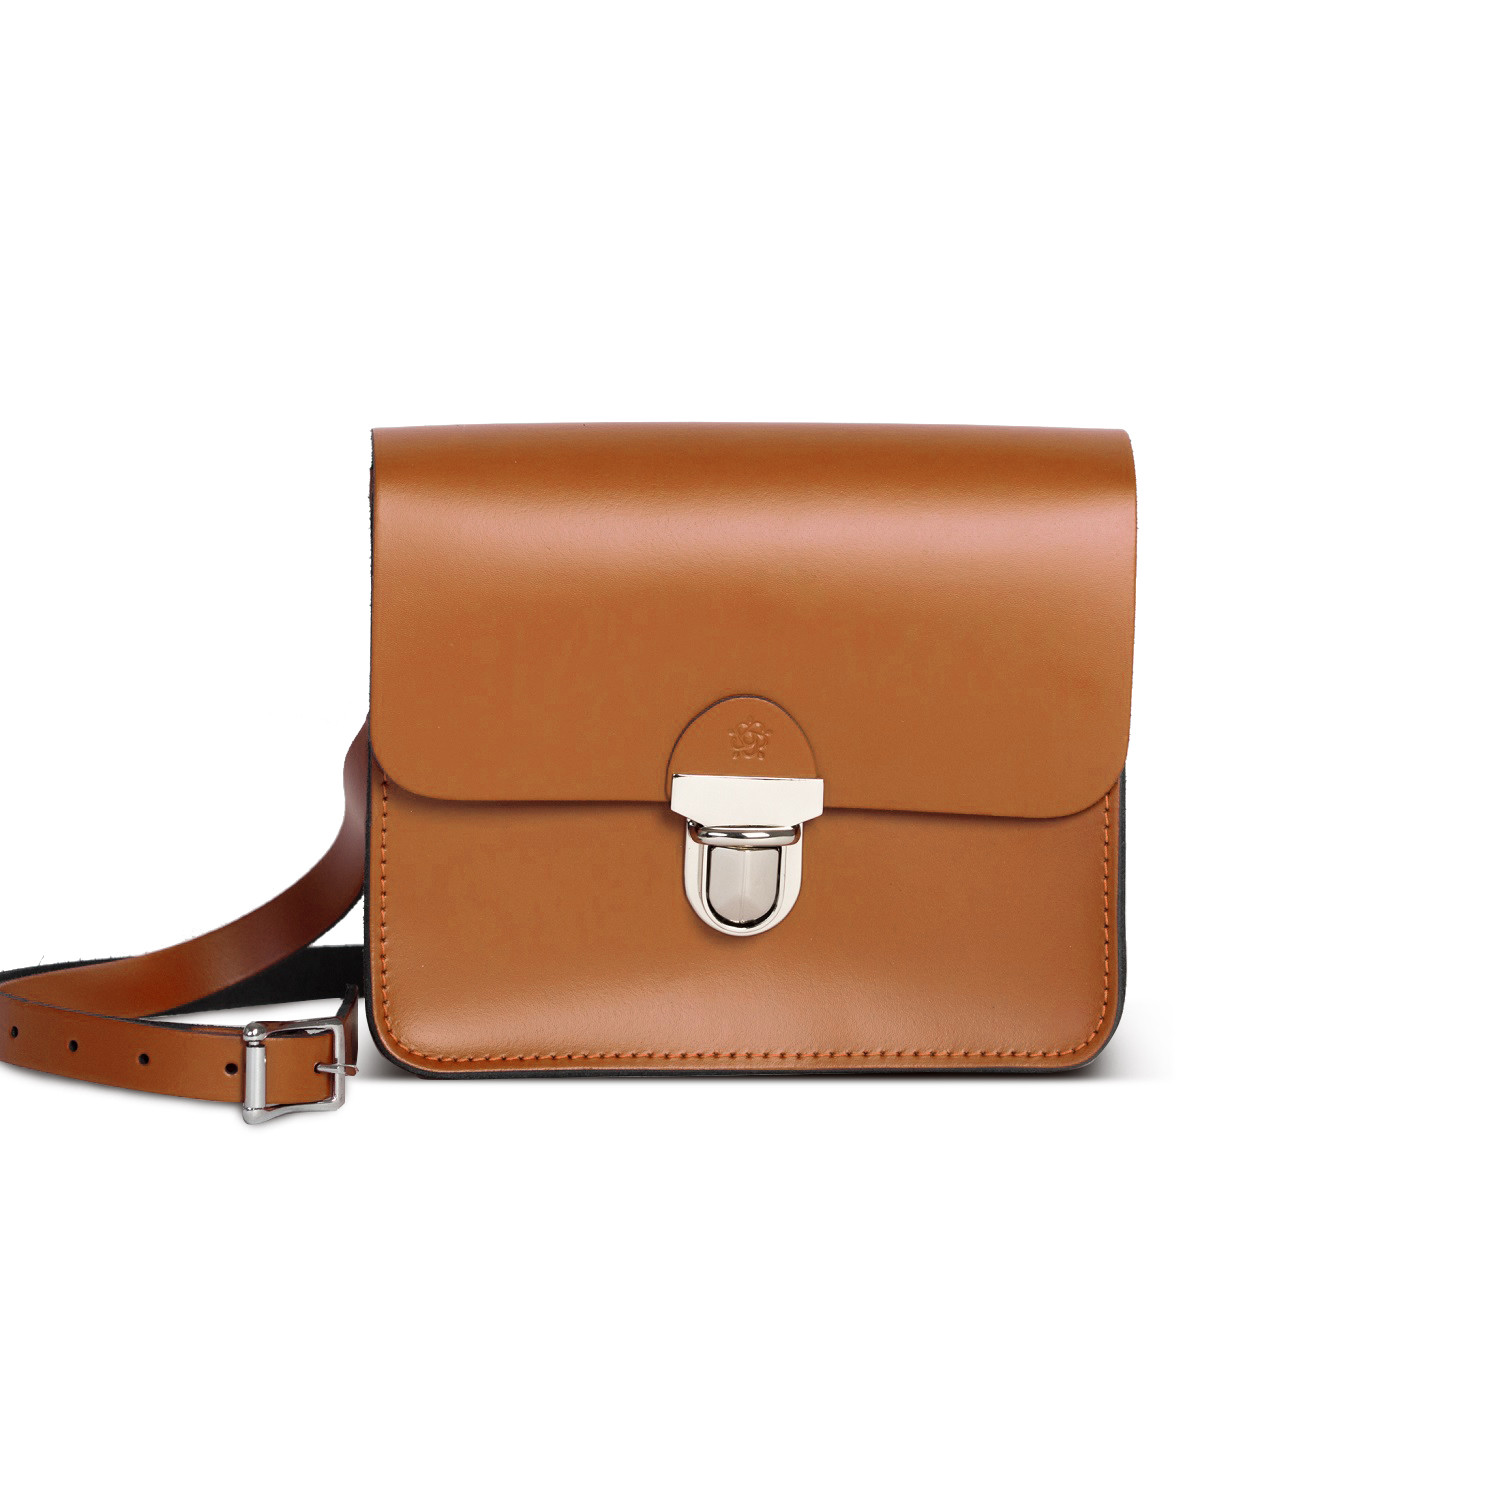 Sofia Premium Leather Crossbody Bag in Dark Tan